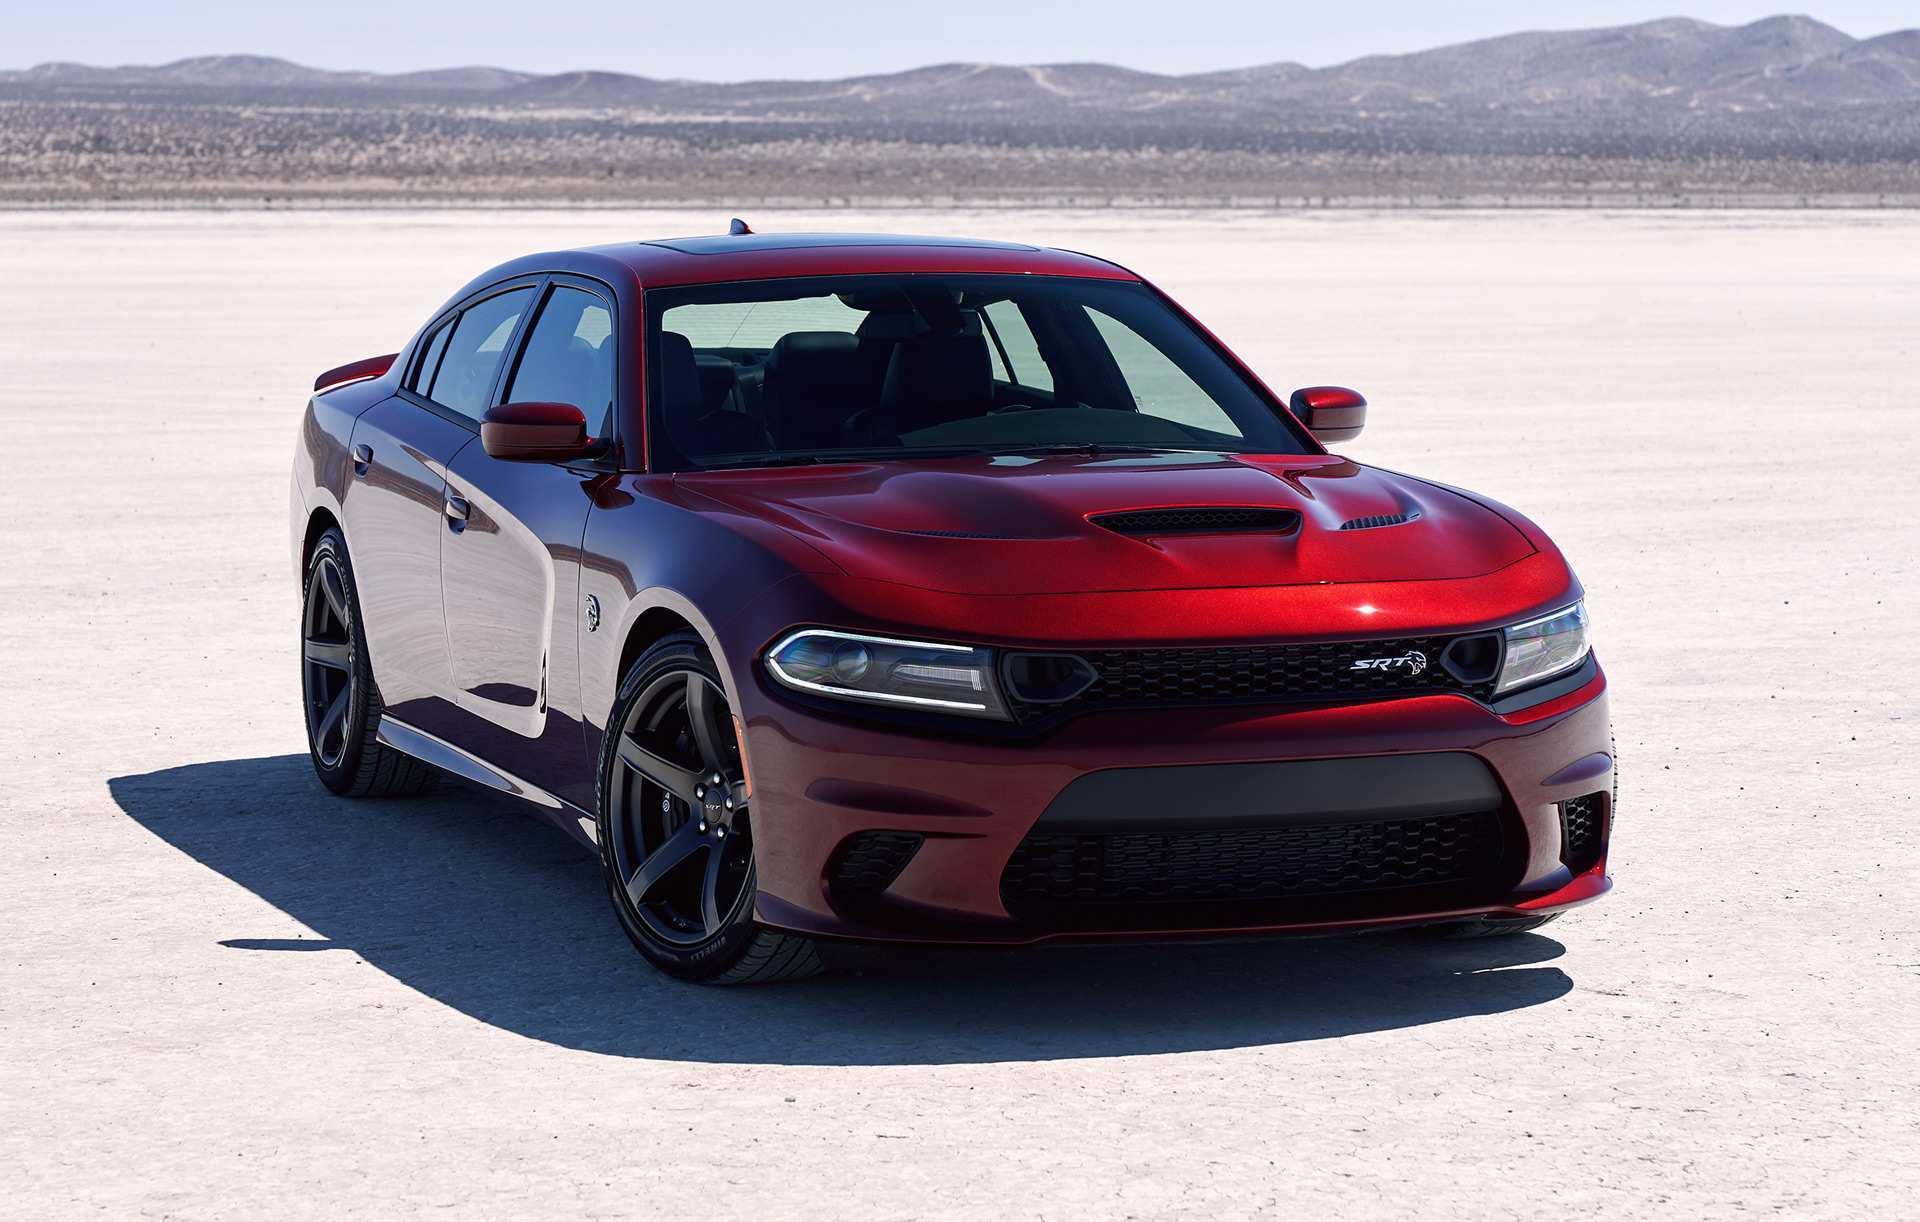 20 New 2019 Dodge Charger Srt8 Hellcat Redesign And Concept